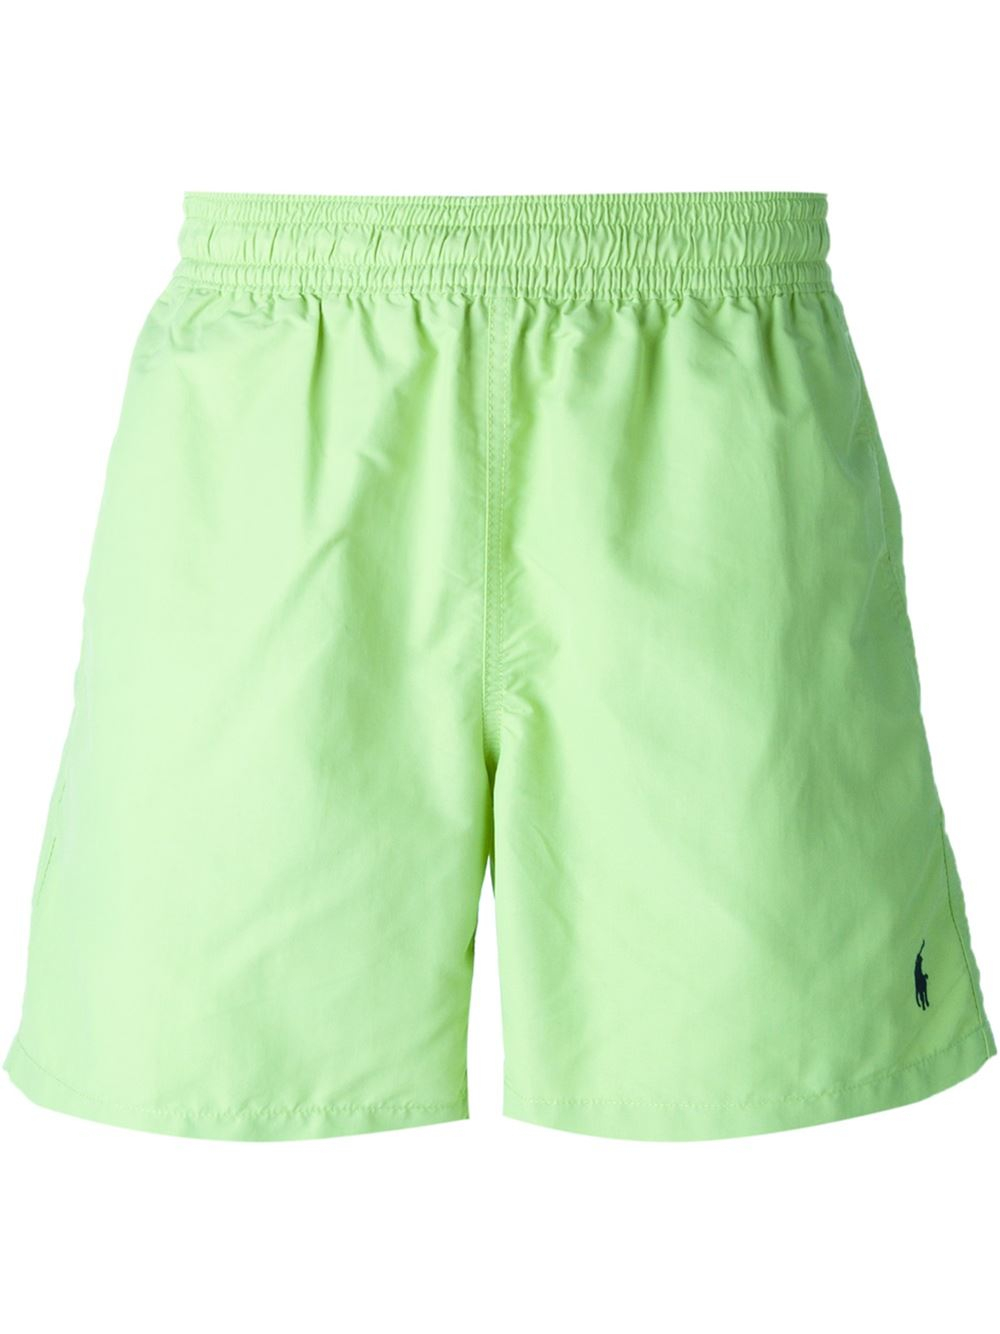 3fd6fa593 ... low price lyst polo ralph lauren logo embroidered swim shorts in green  for men 1f4d3 45cd9